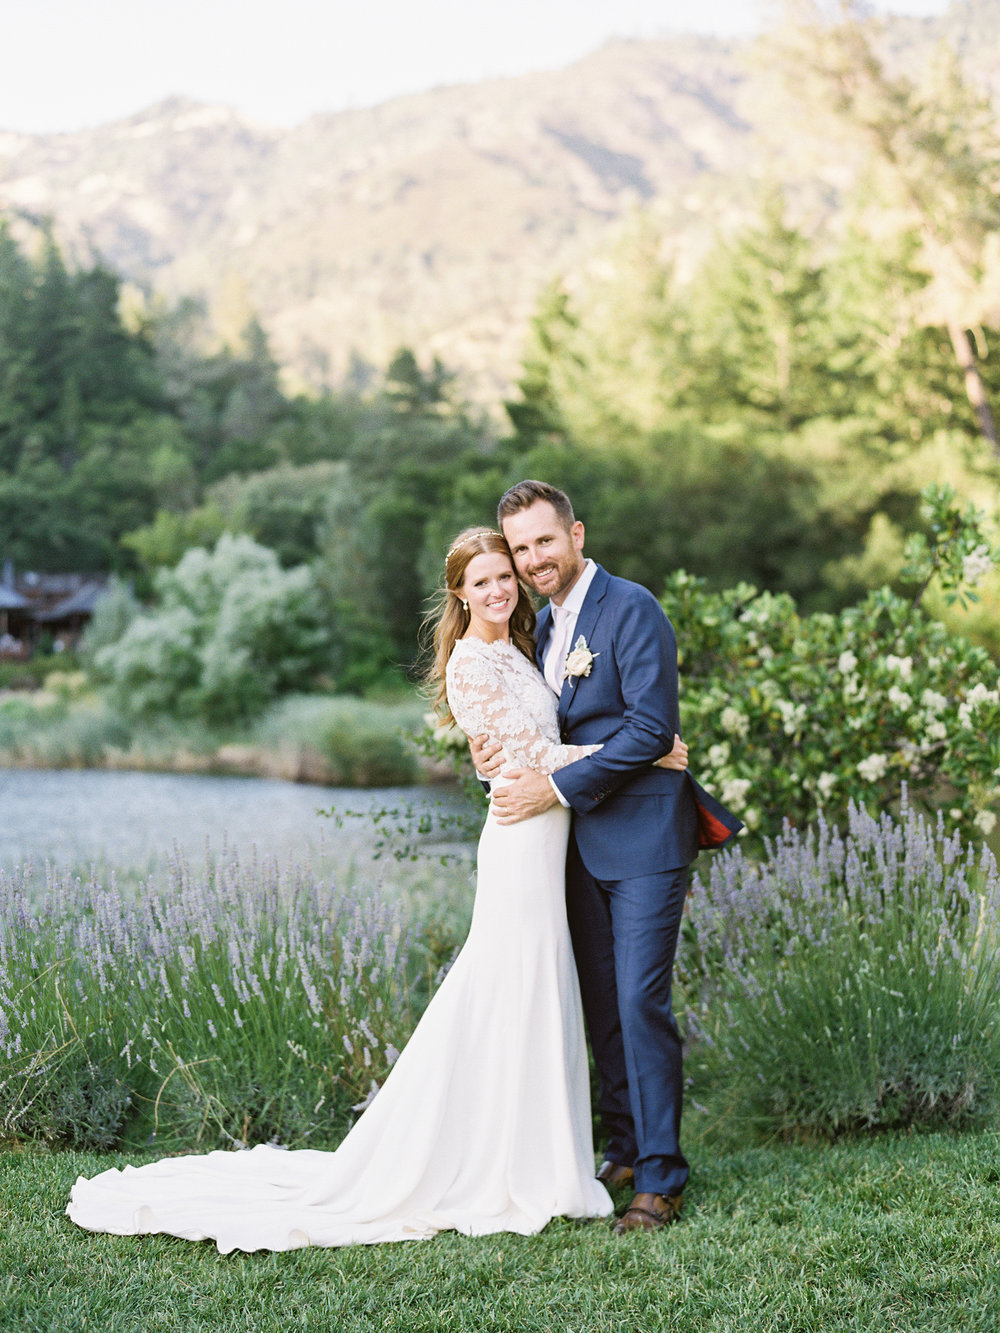 Napa Wedding Photographer - Meghan Mehan Photography _016.jpg